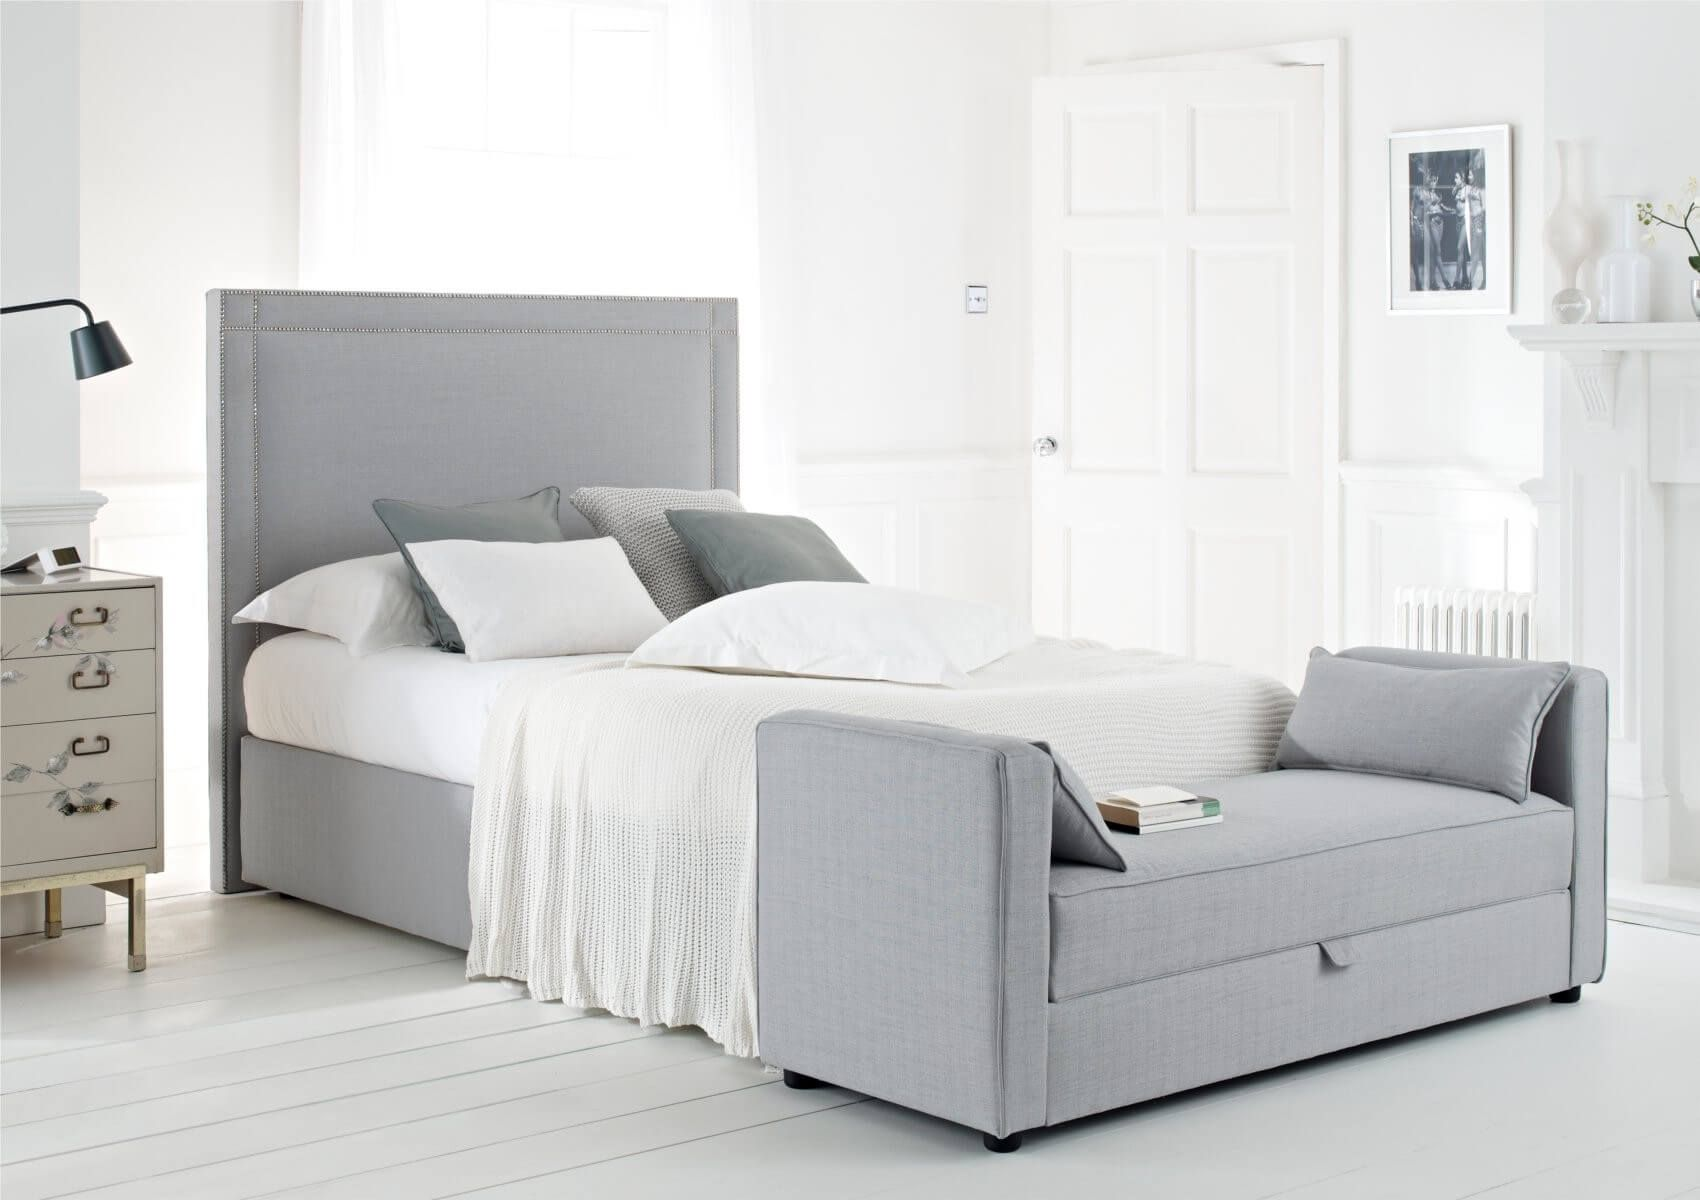 Some Of The Best Single Bed Designs To Have In Your Home Headboards For Beds Black Bedroom Furniture Woman Bedroom